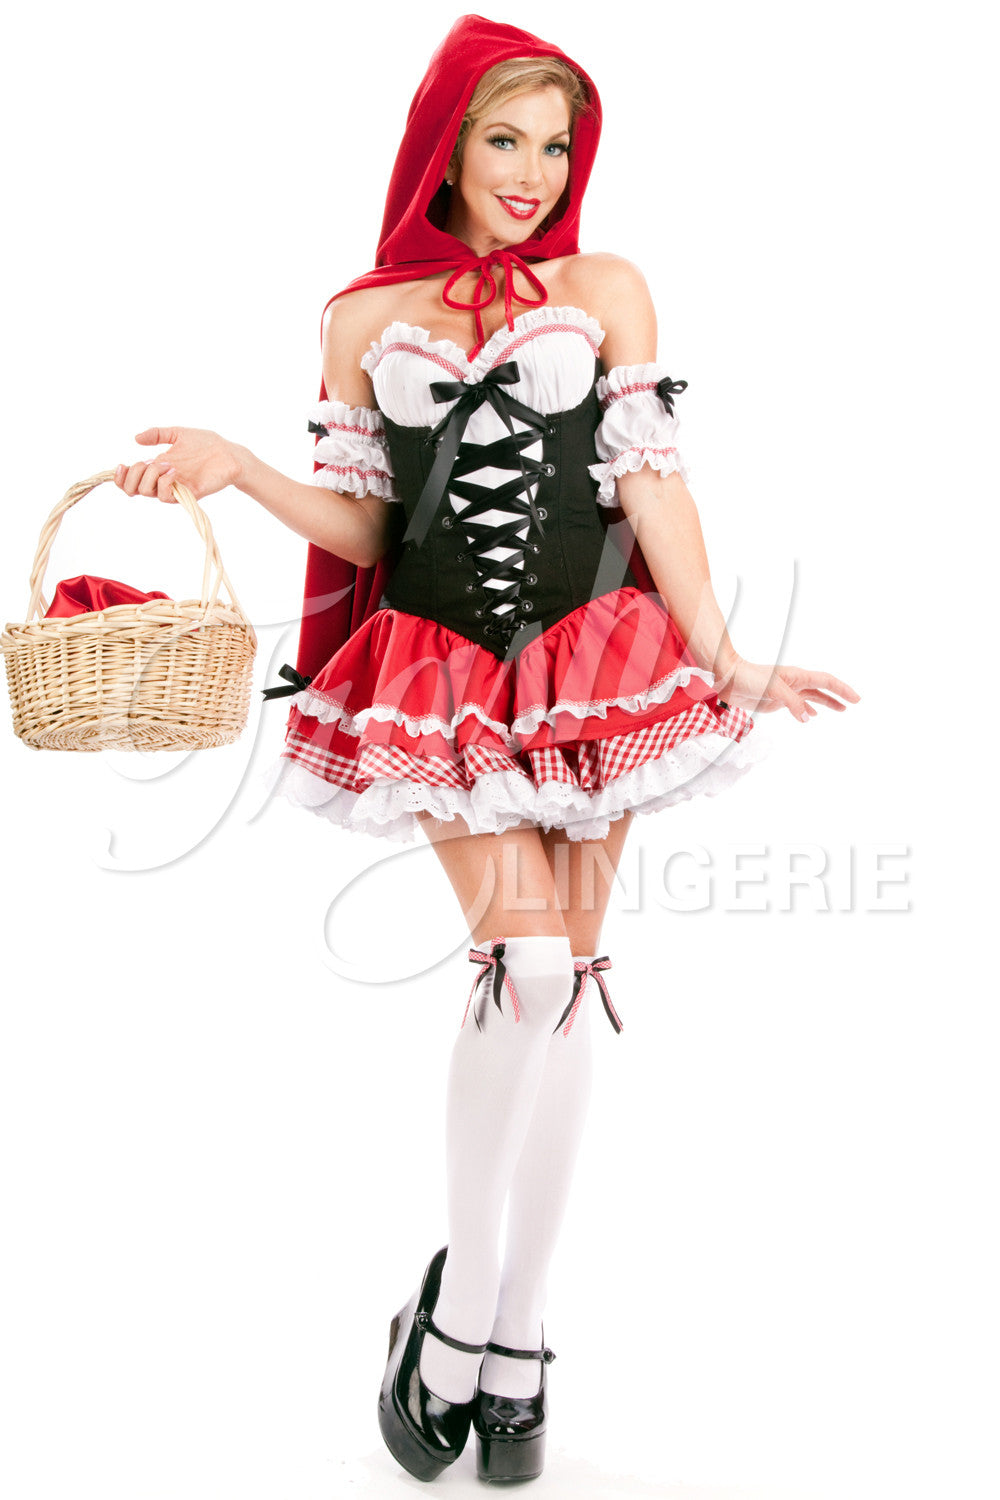 Bridgette Red Riding Hood Corset